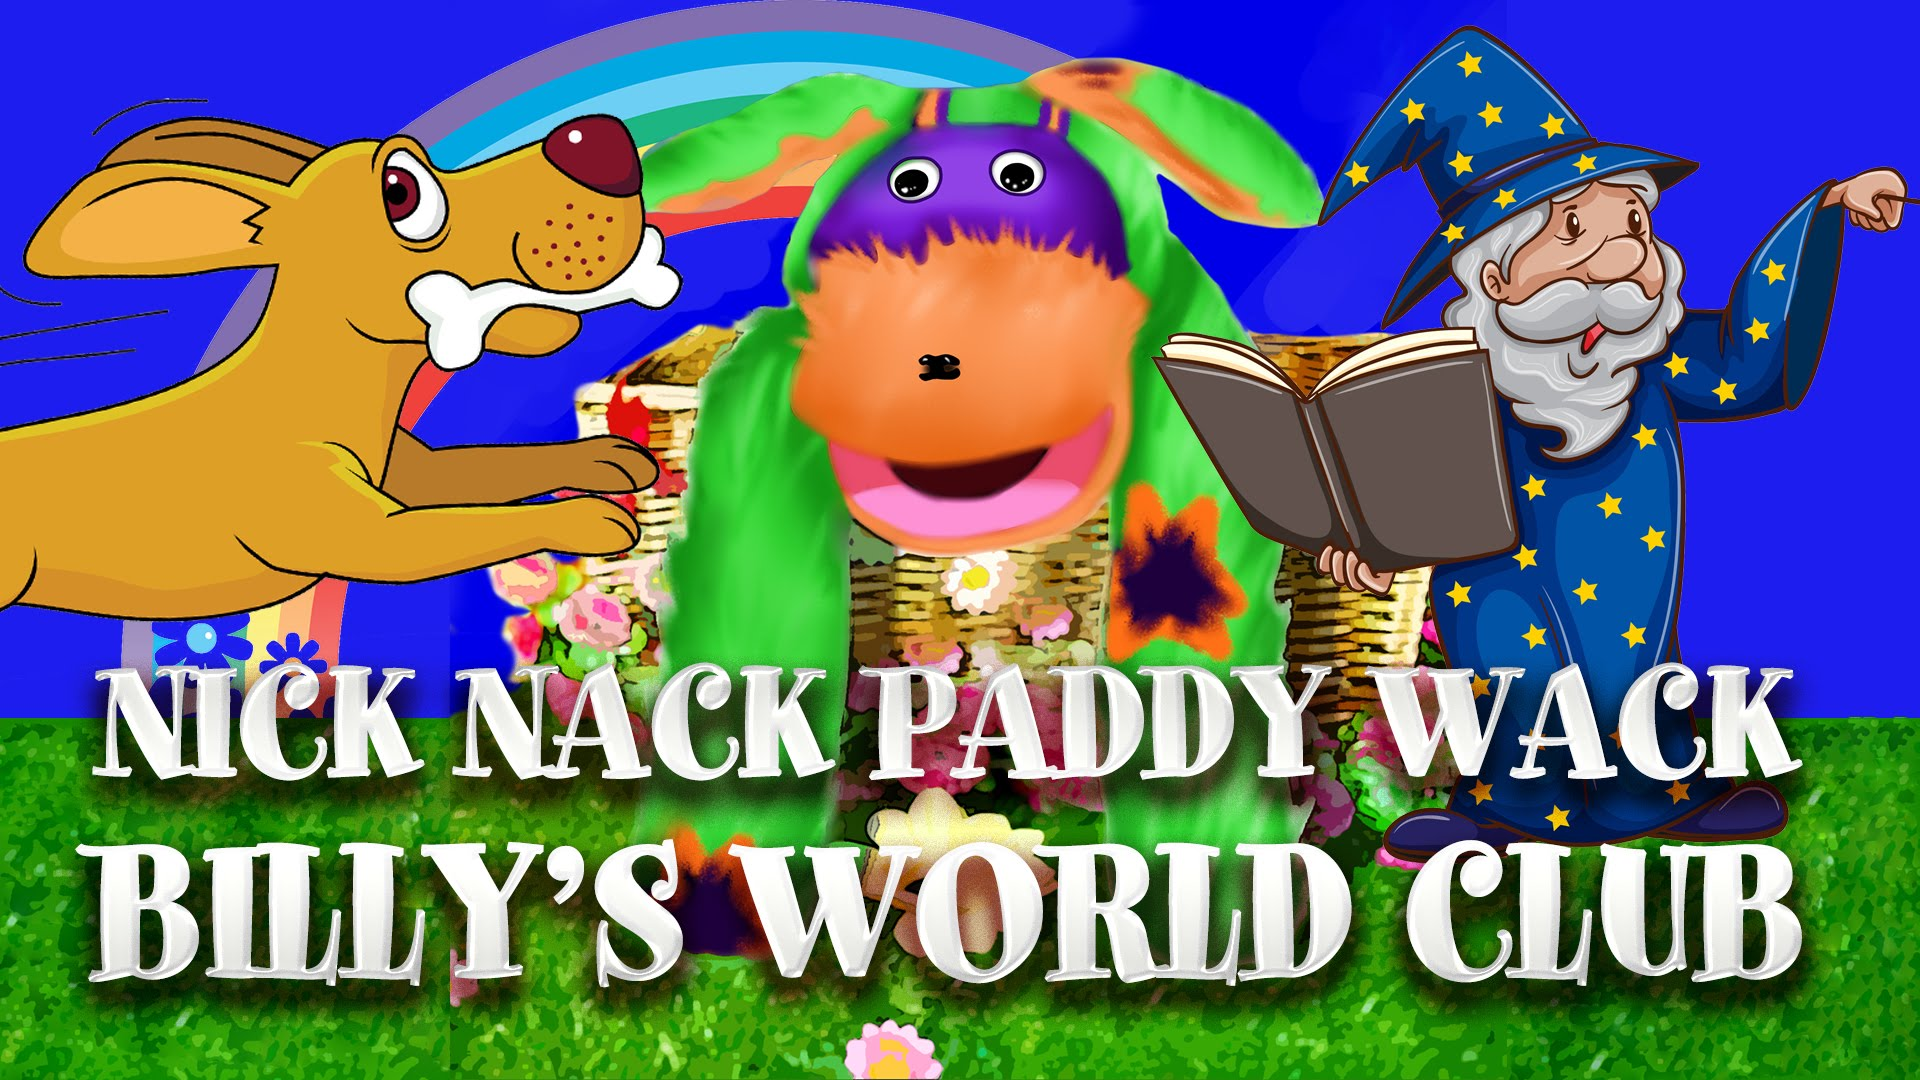 Counting to 10 Nursery Rhyme Nick Nack Paddy Wack from Billy's.